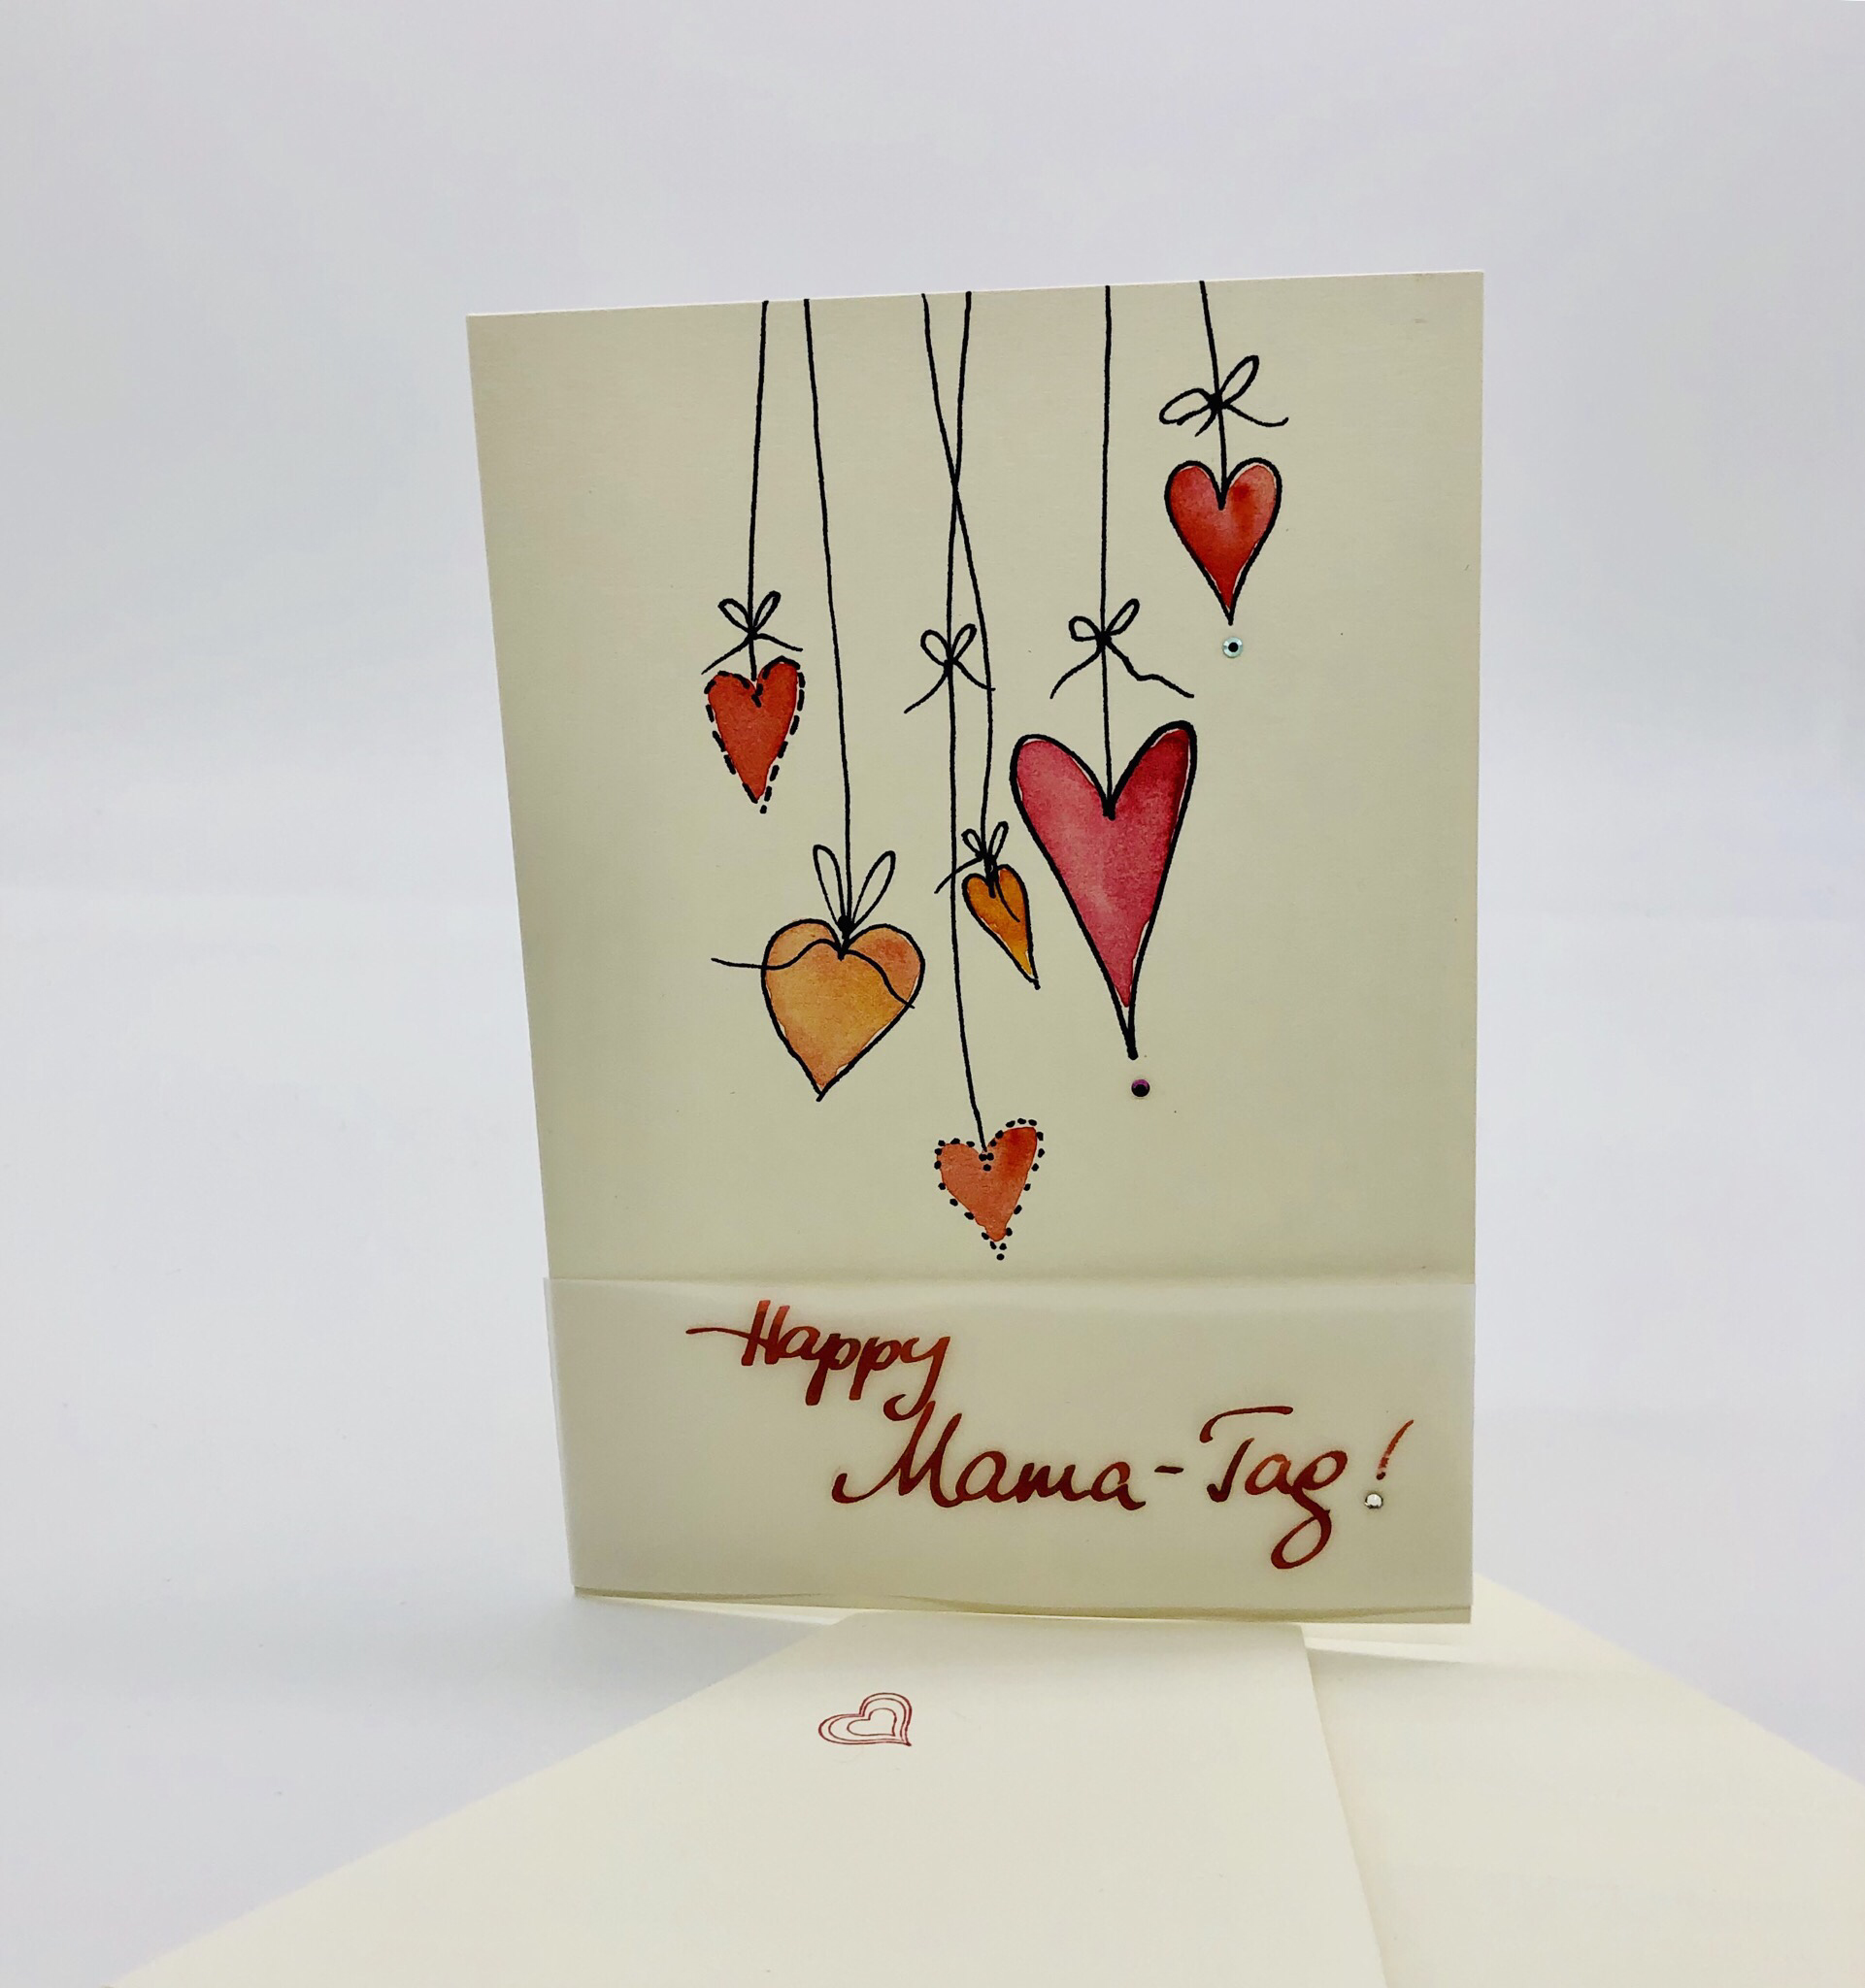 "Billett ""handmade"" Muttertag - Happy Mama-Tag! 25192"